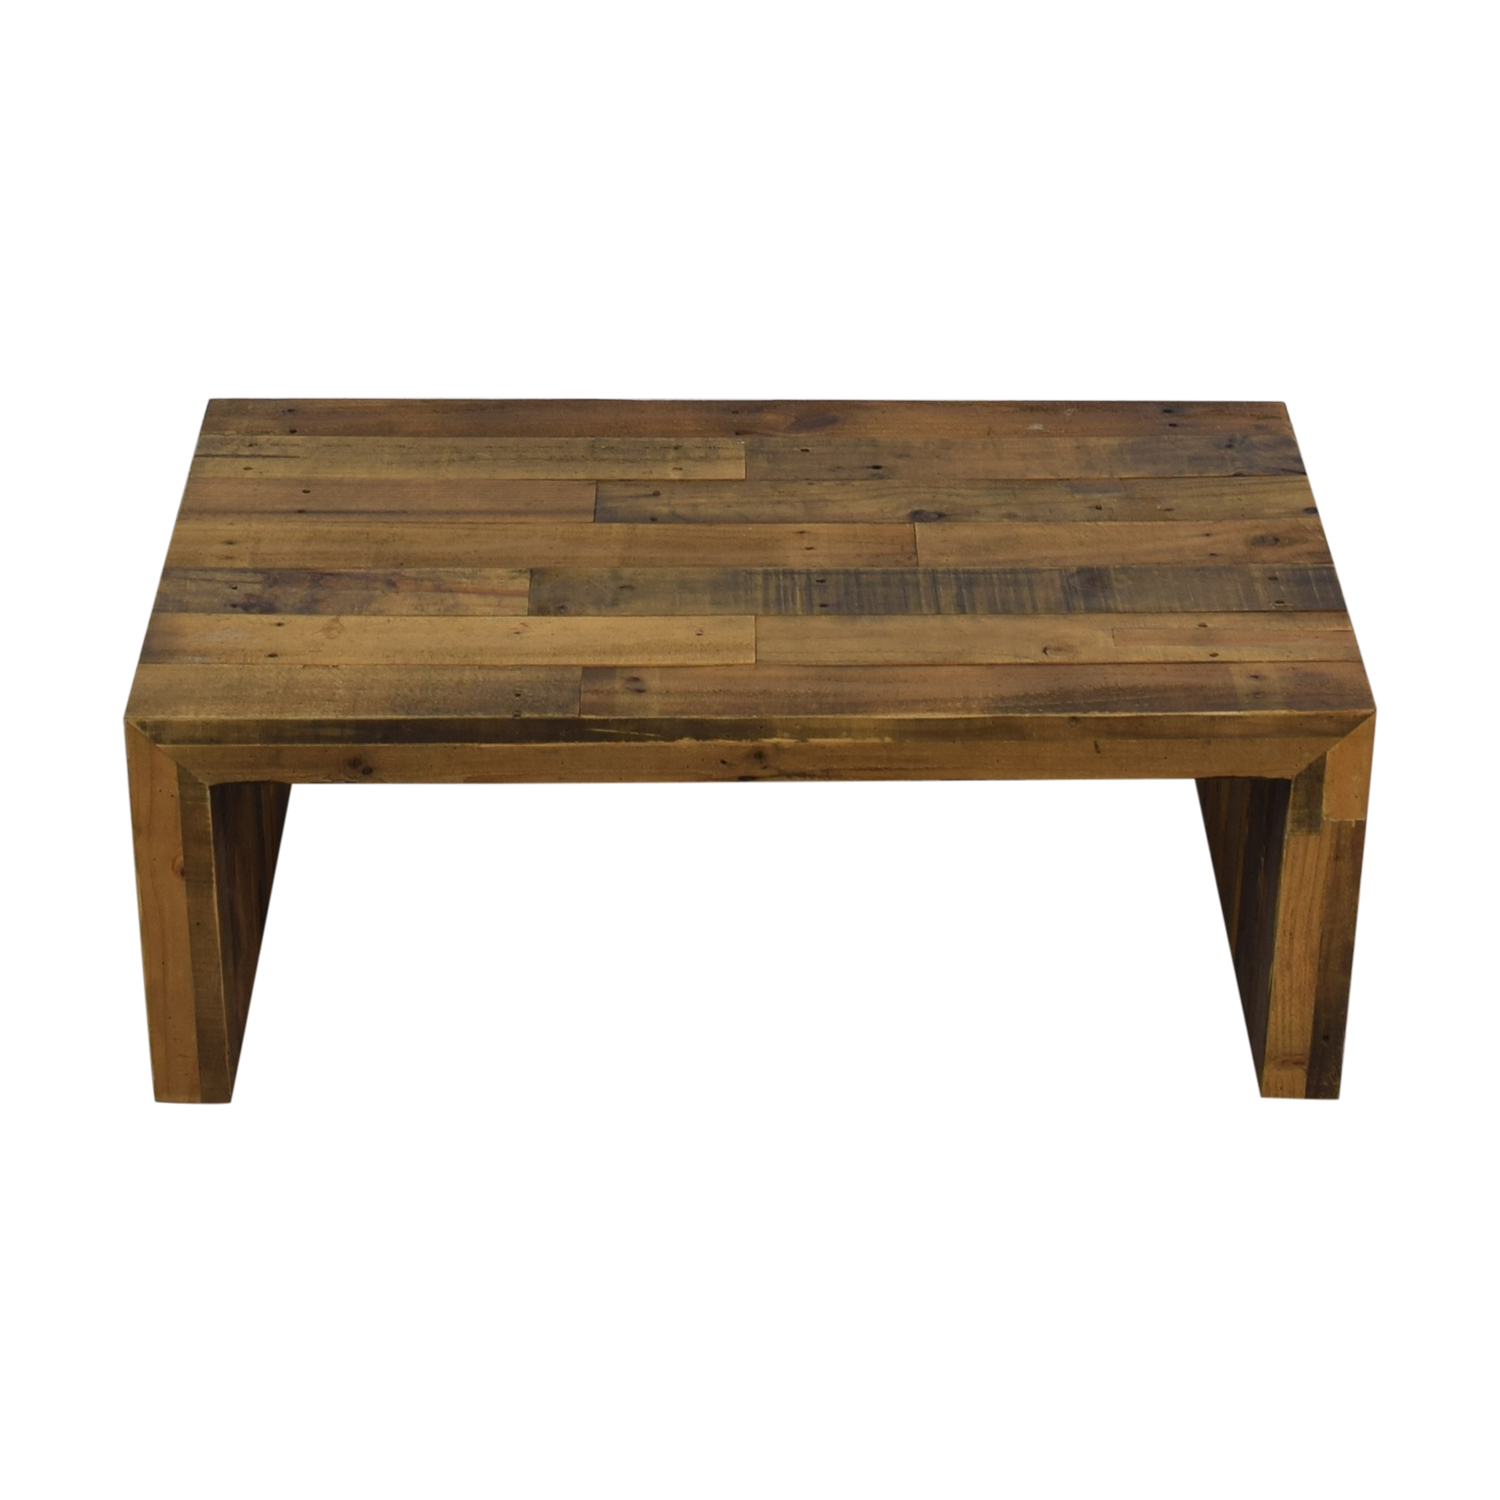 West Elm West Elm Emmerson Reclaimed Wood Coffee Table dimensions